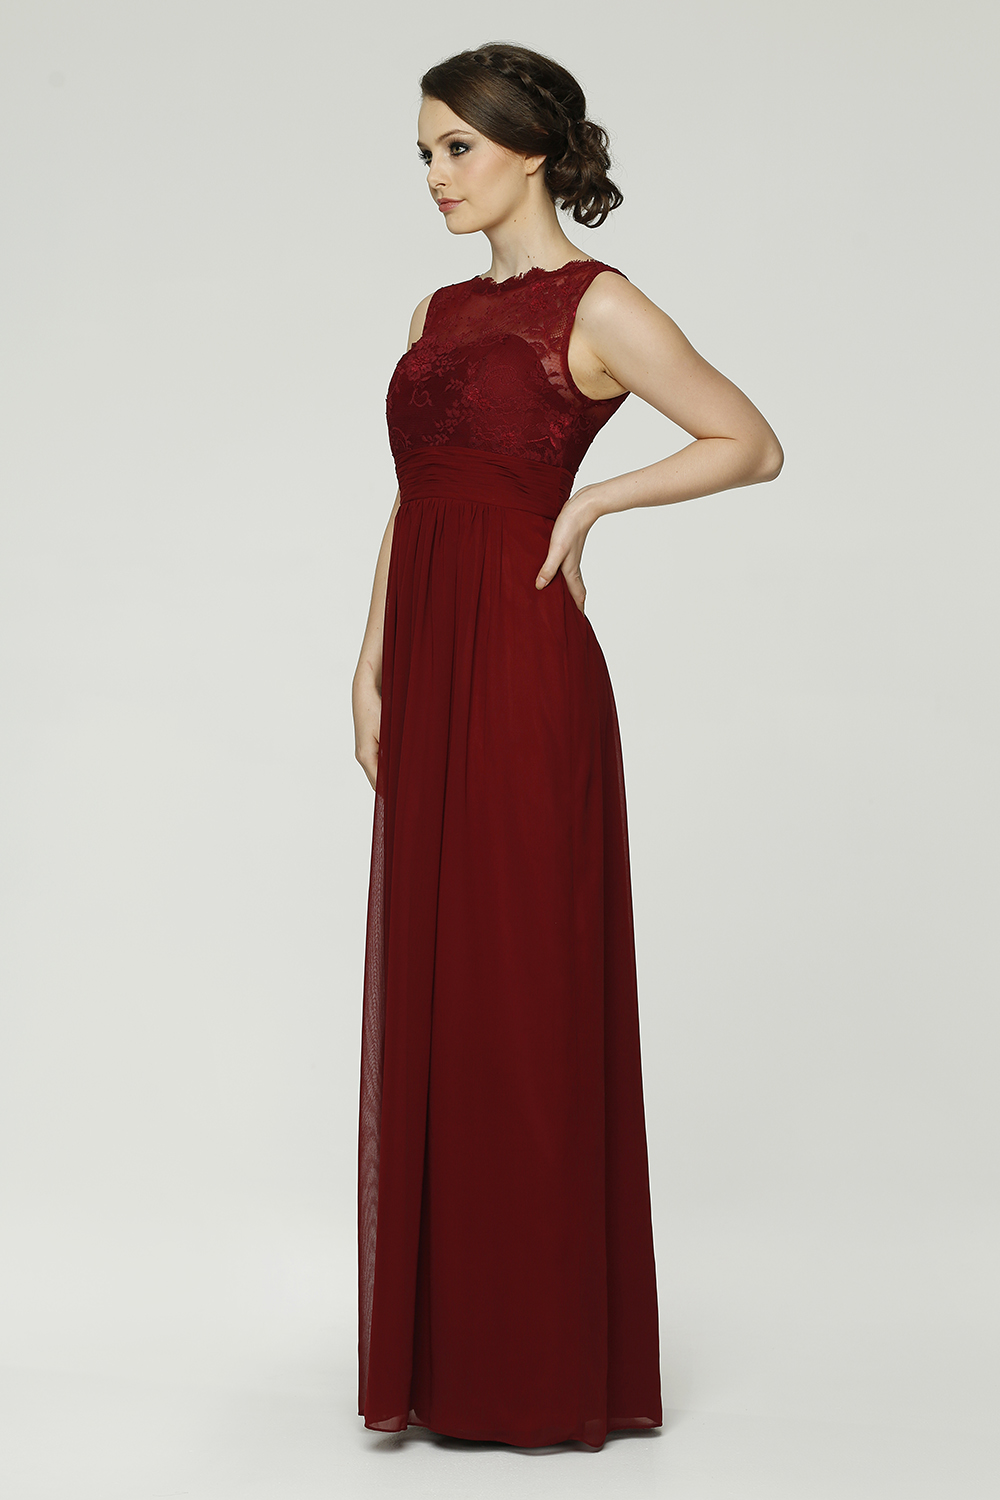 PO34 Charlotte Bridesmaids Dress - end of dye lot merlot